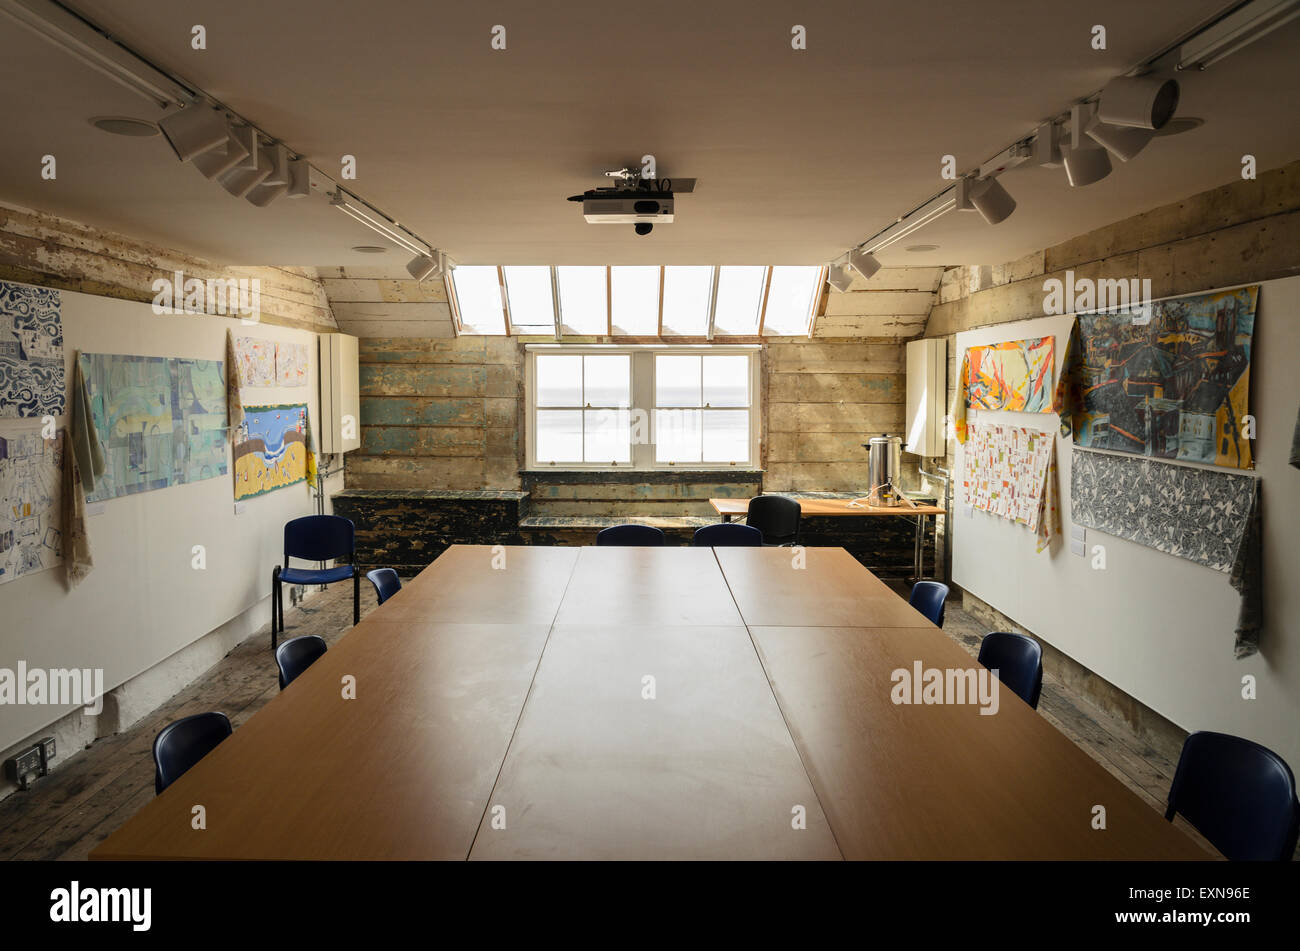 Artists Lofts Stock Photos & Artists Lofts Stock Images - Alamy